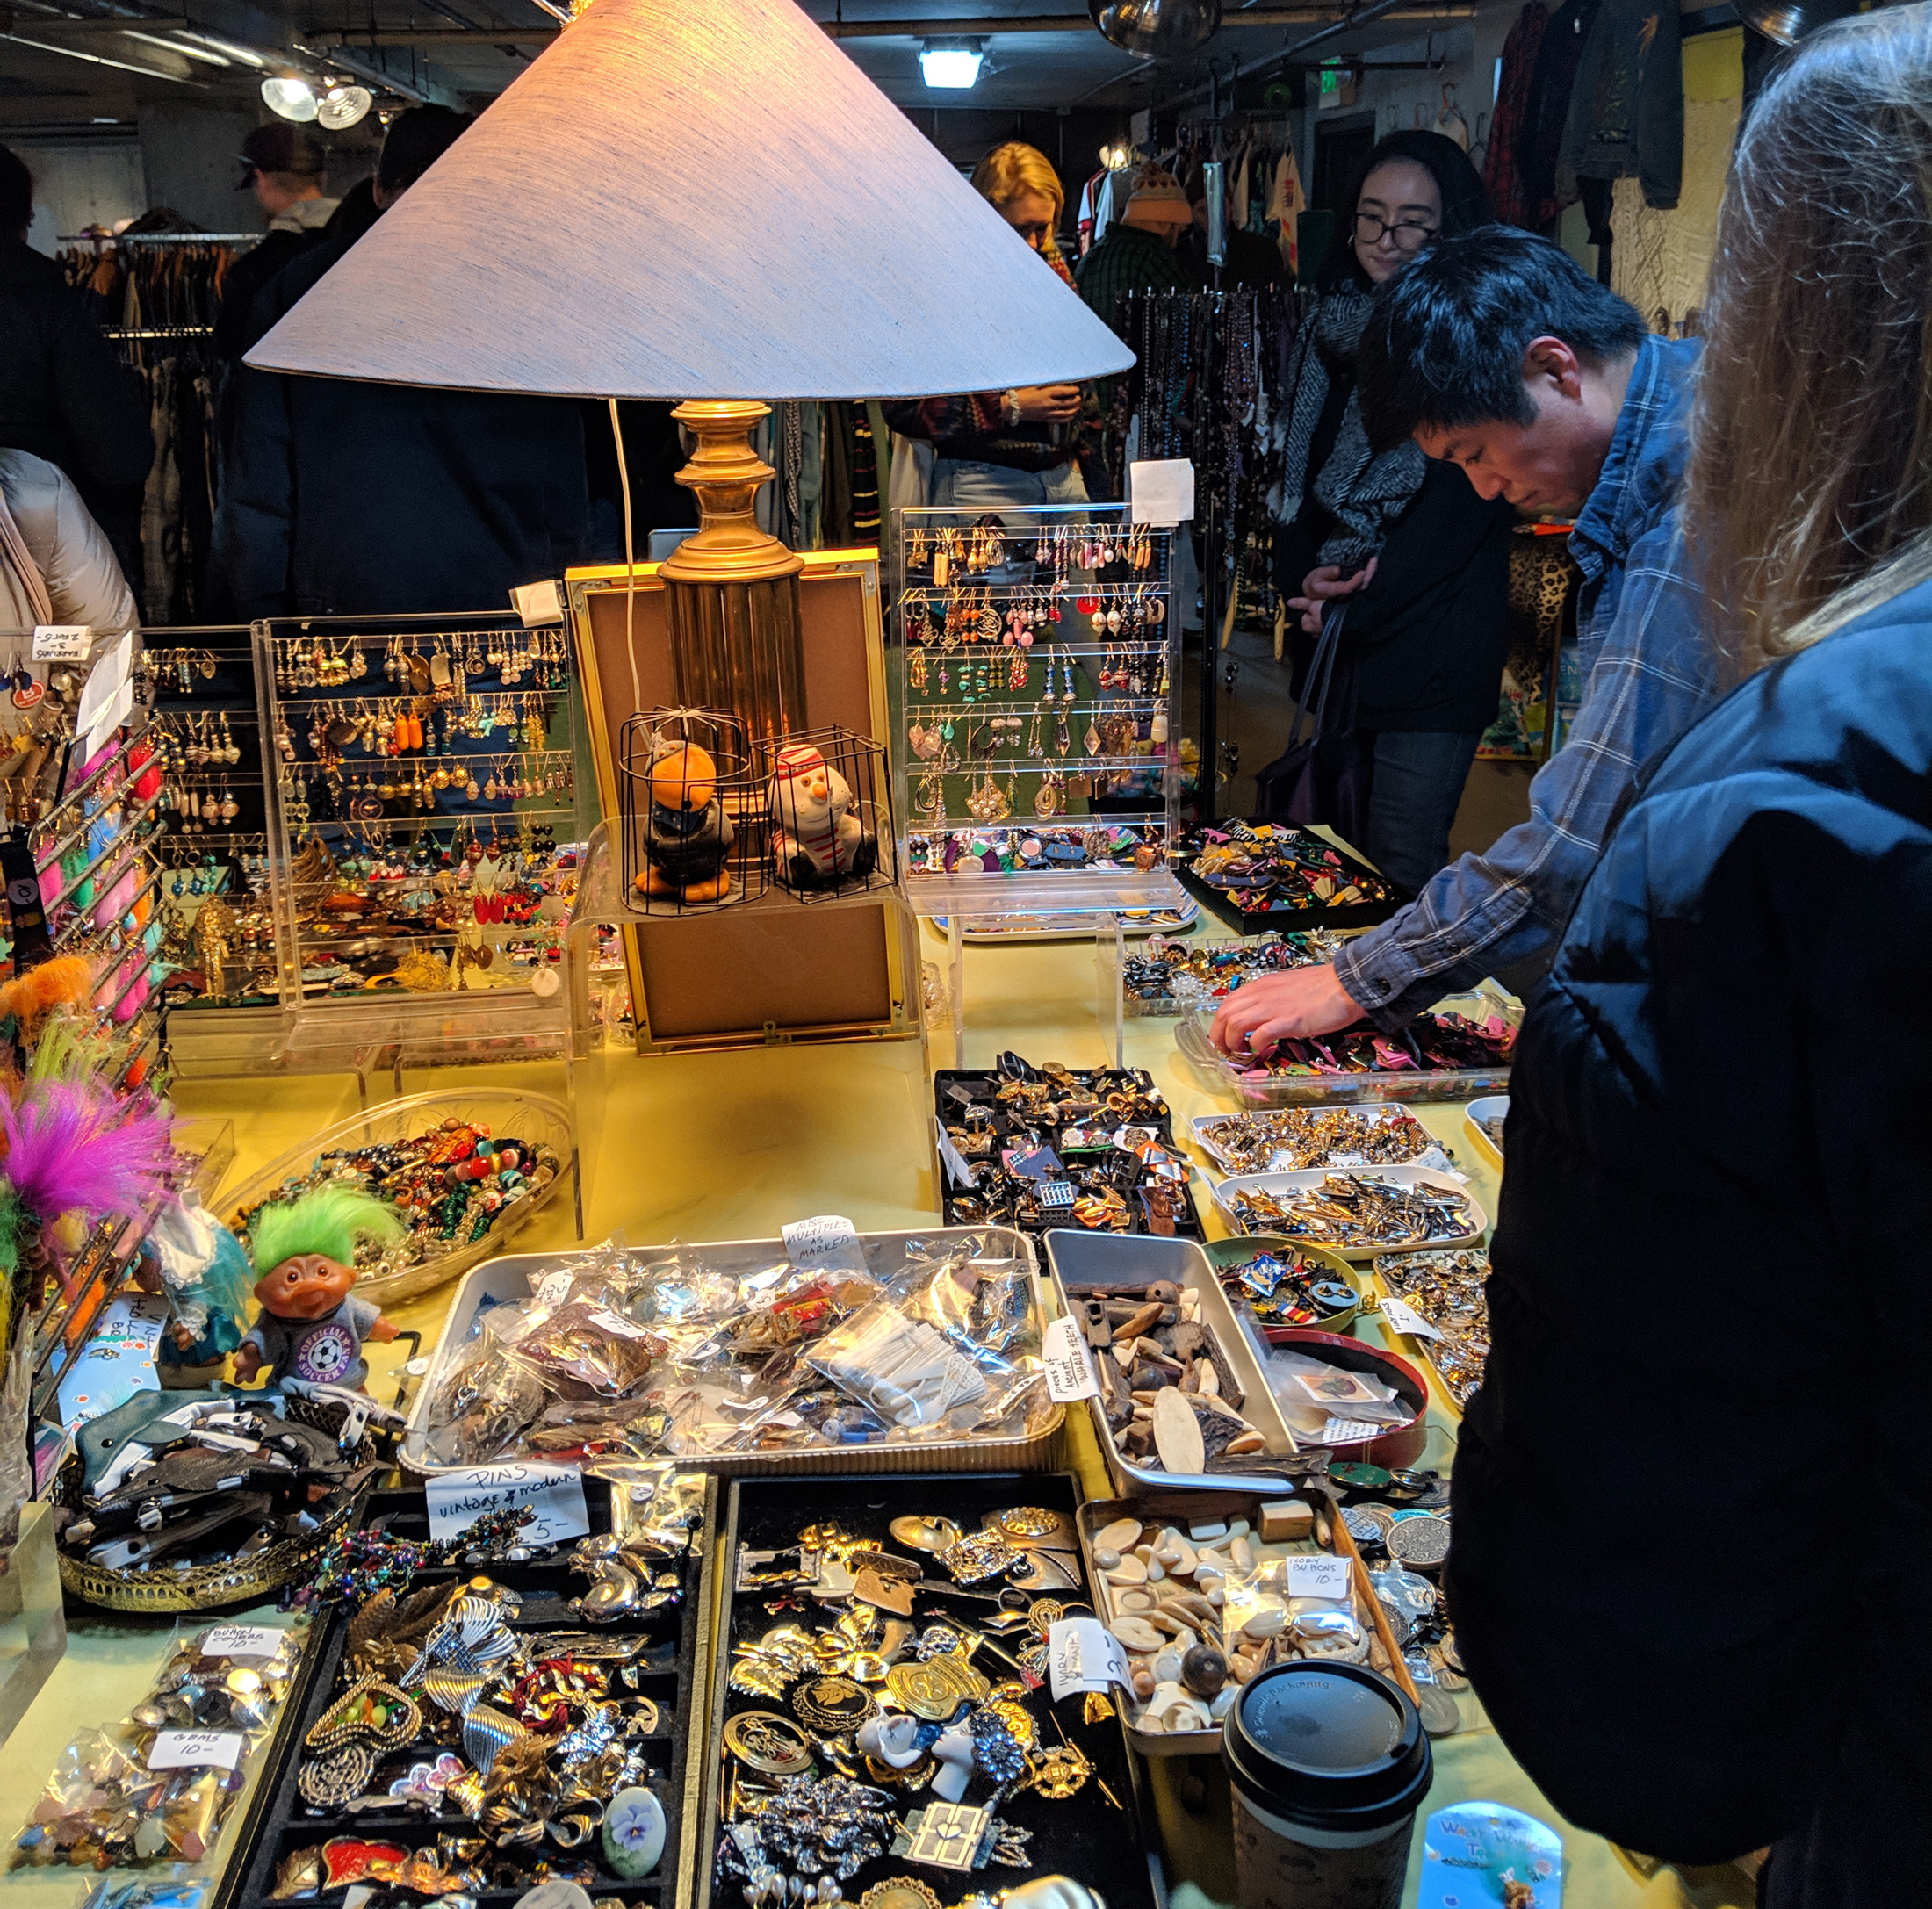 A flea market seller's goods spread out on a table by a lamp.